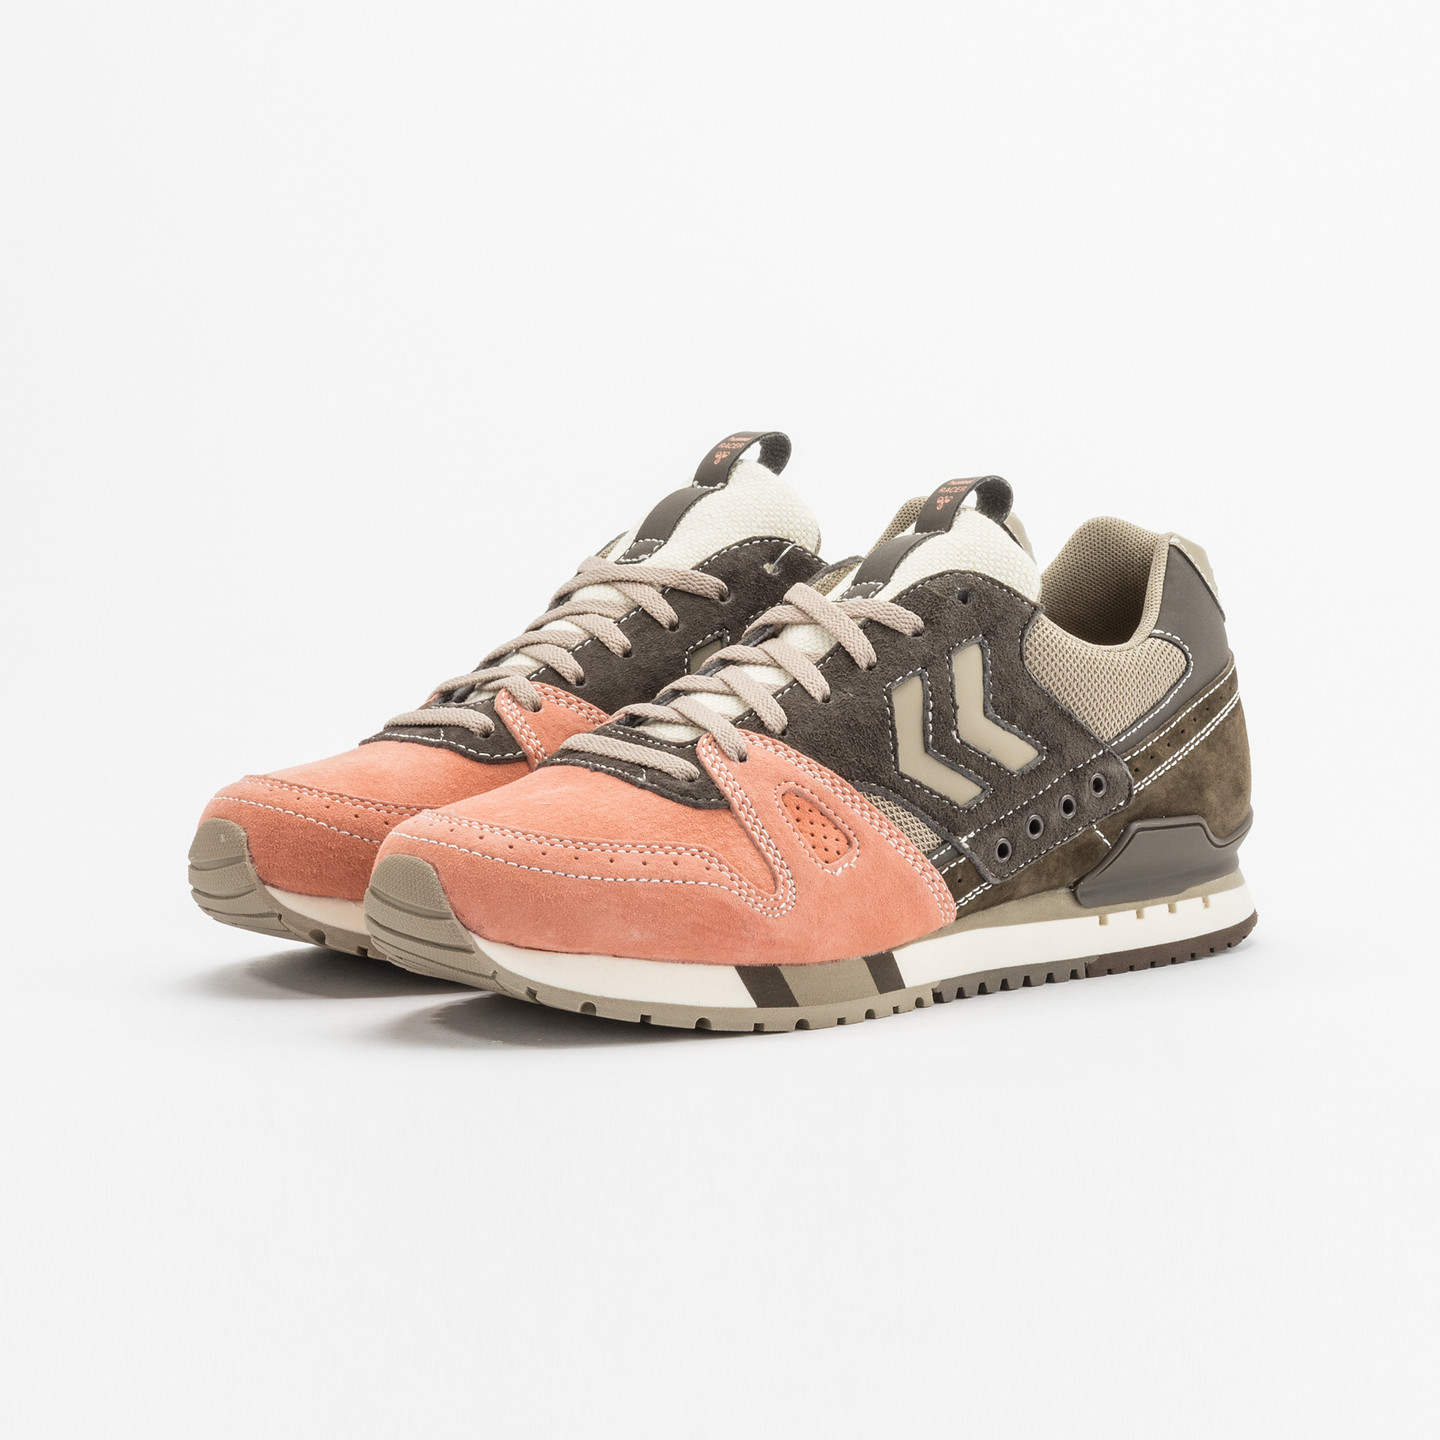 Hummel Marathona OG Mita 'Danish Salmon' Chinchilla / Salmon 63603-1515-40